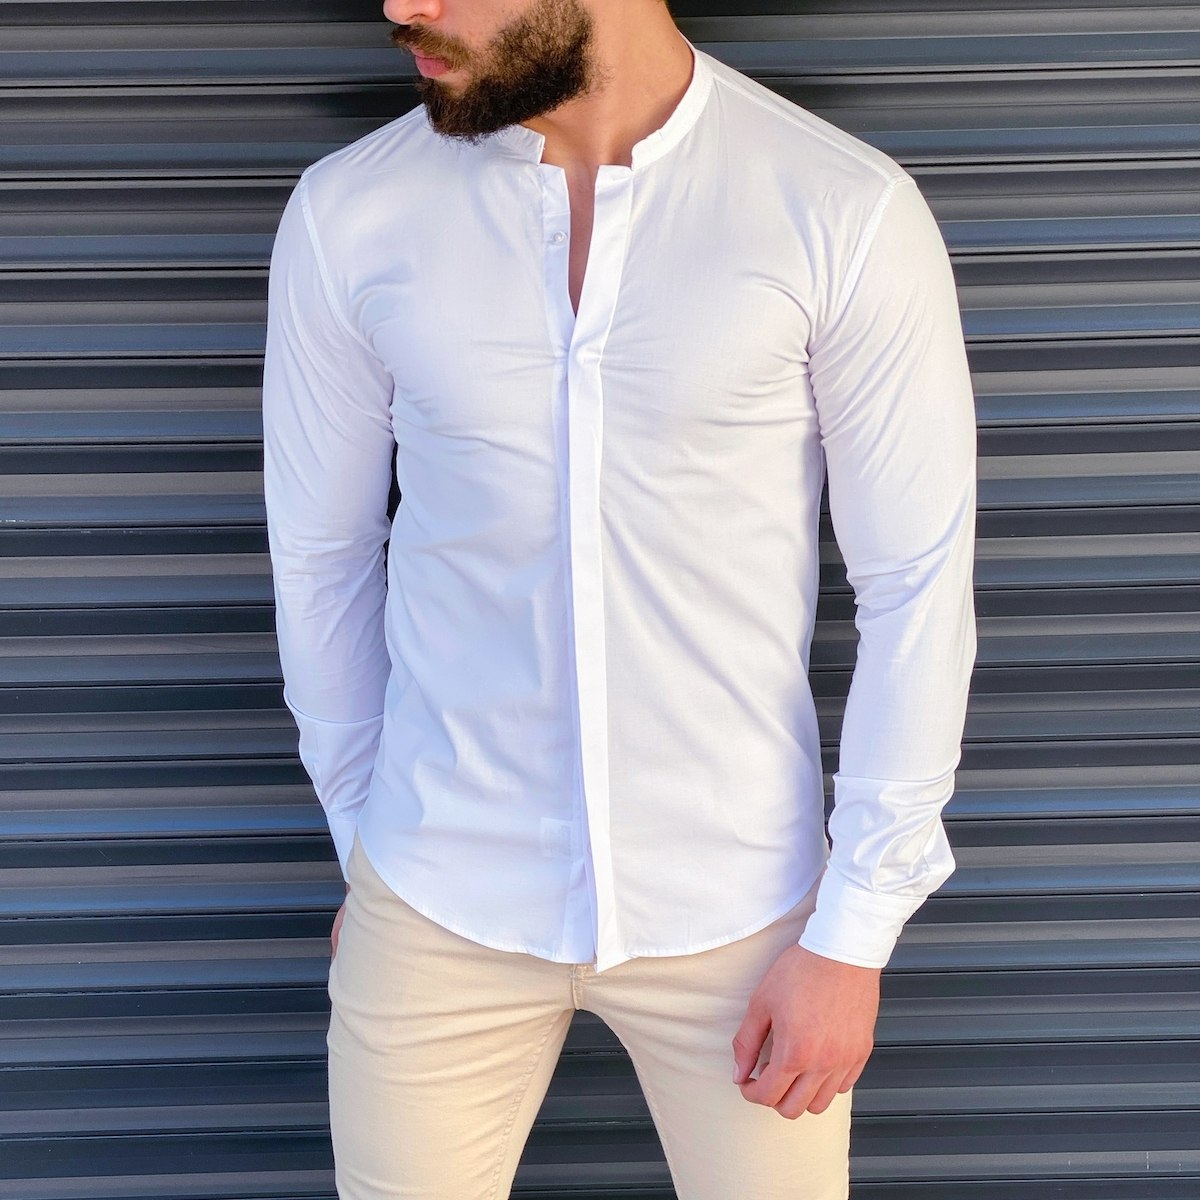 Men's Short Collared Shirt...